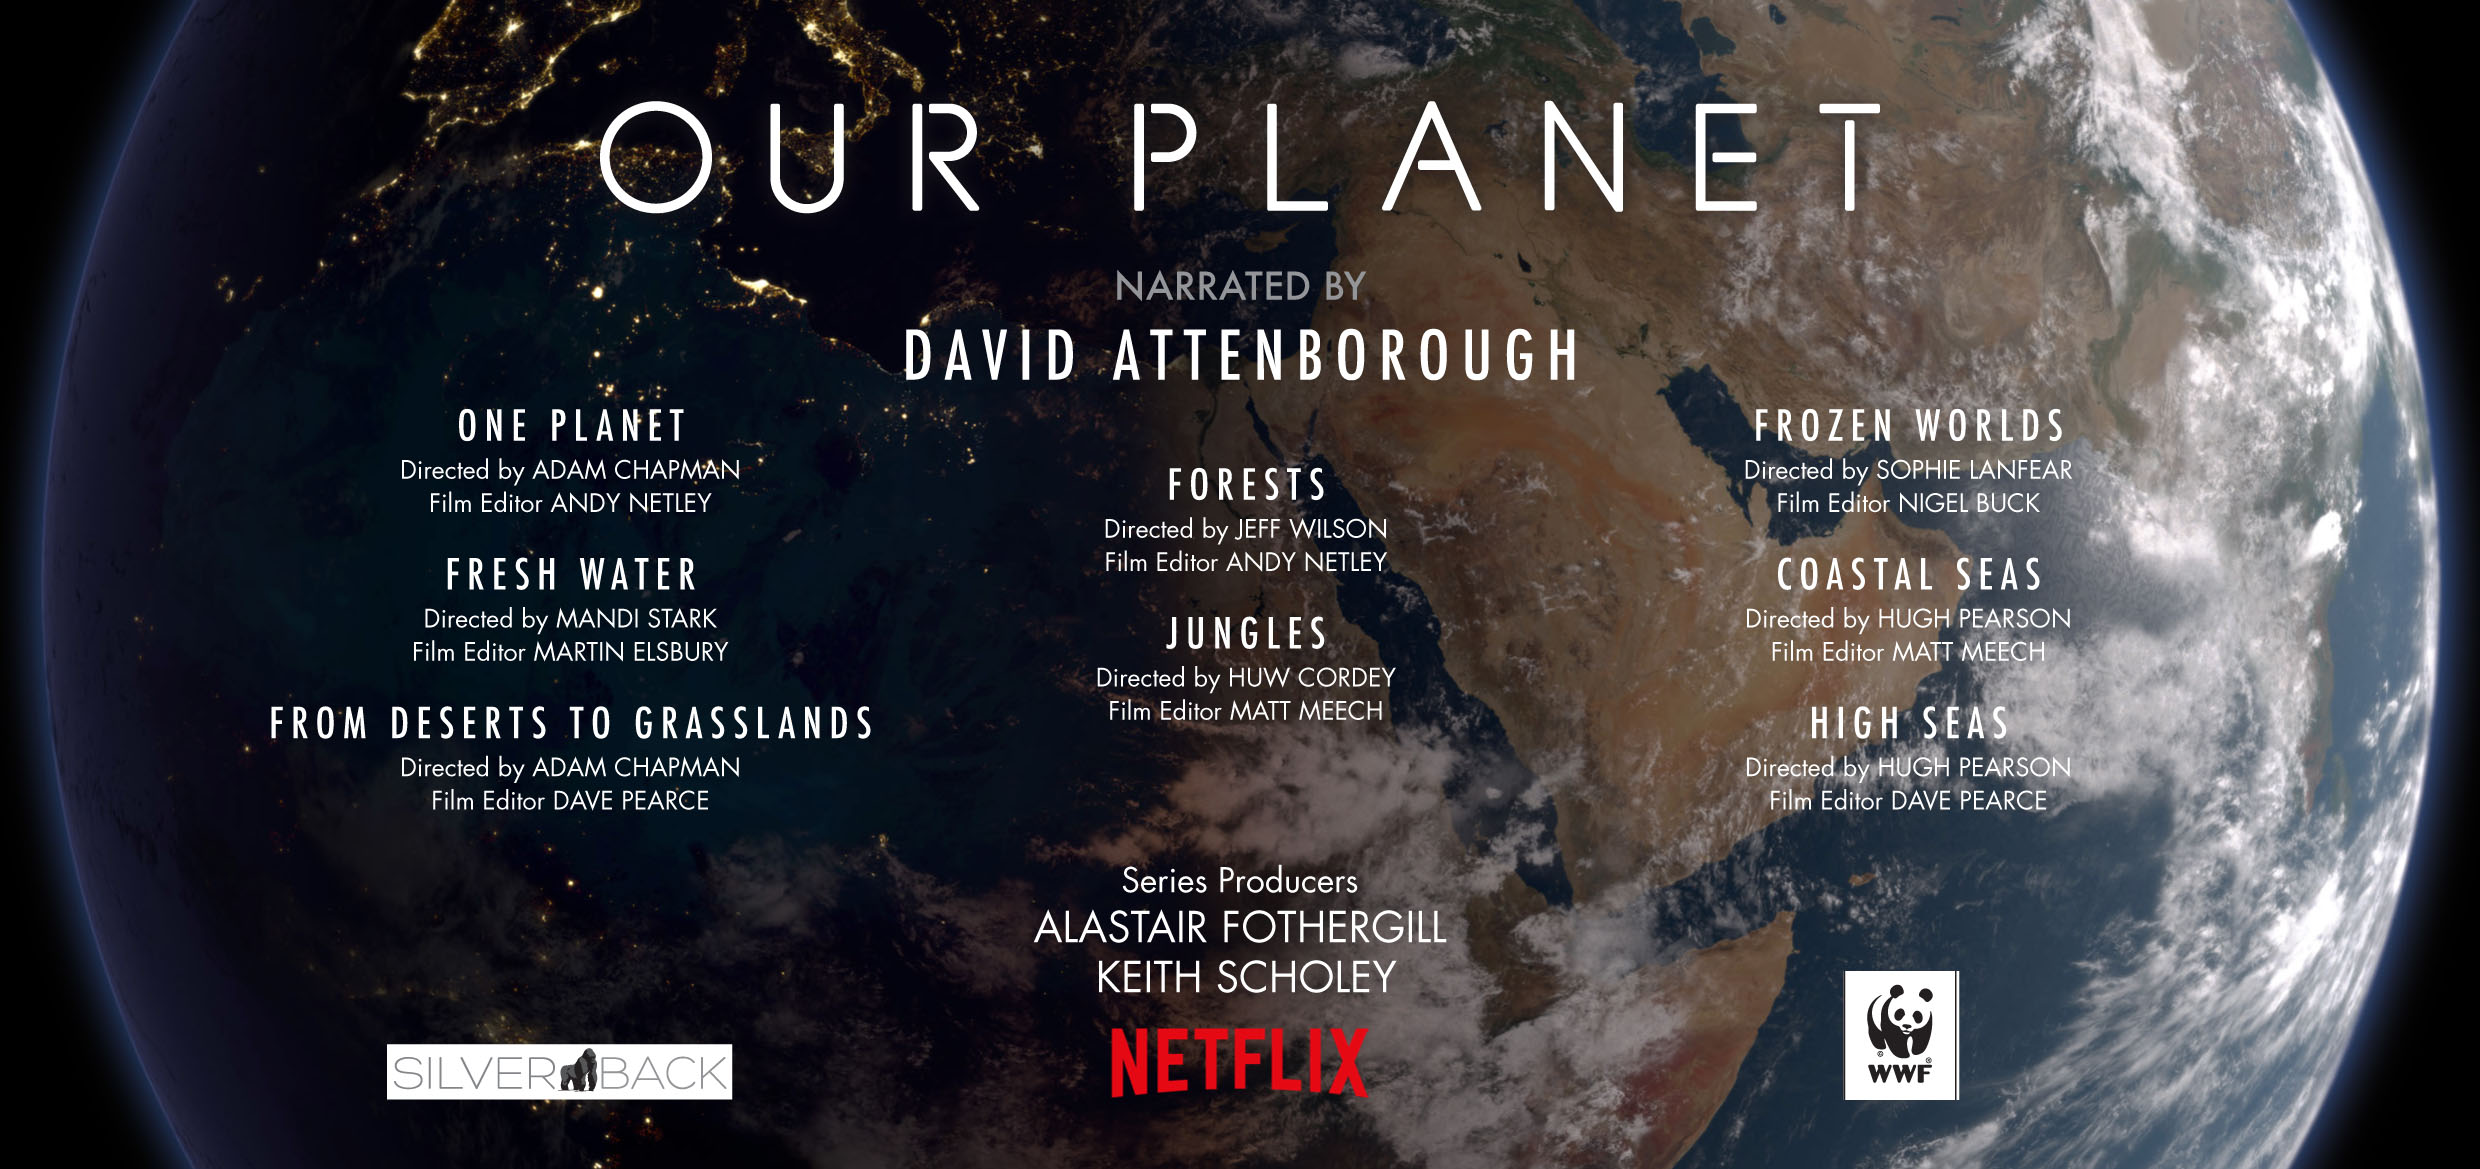 Our Planet - Silverback & Netflix